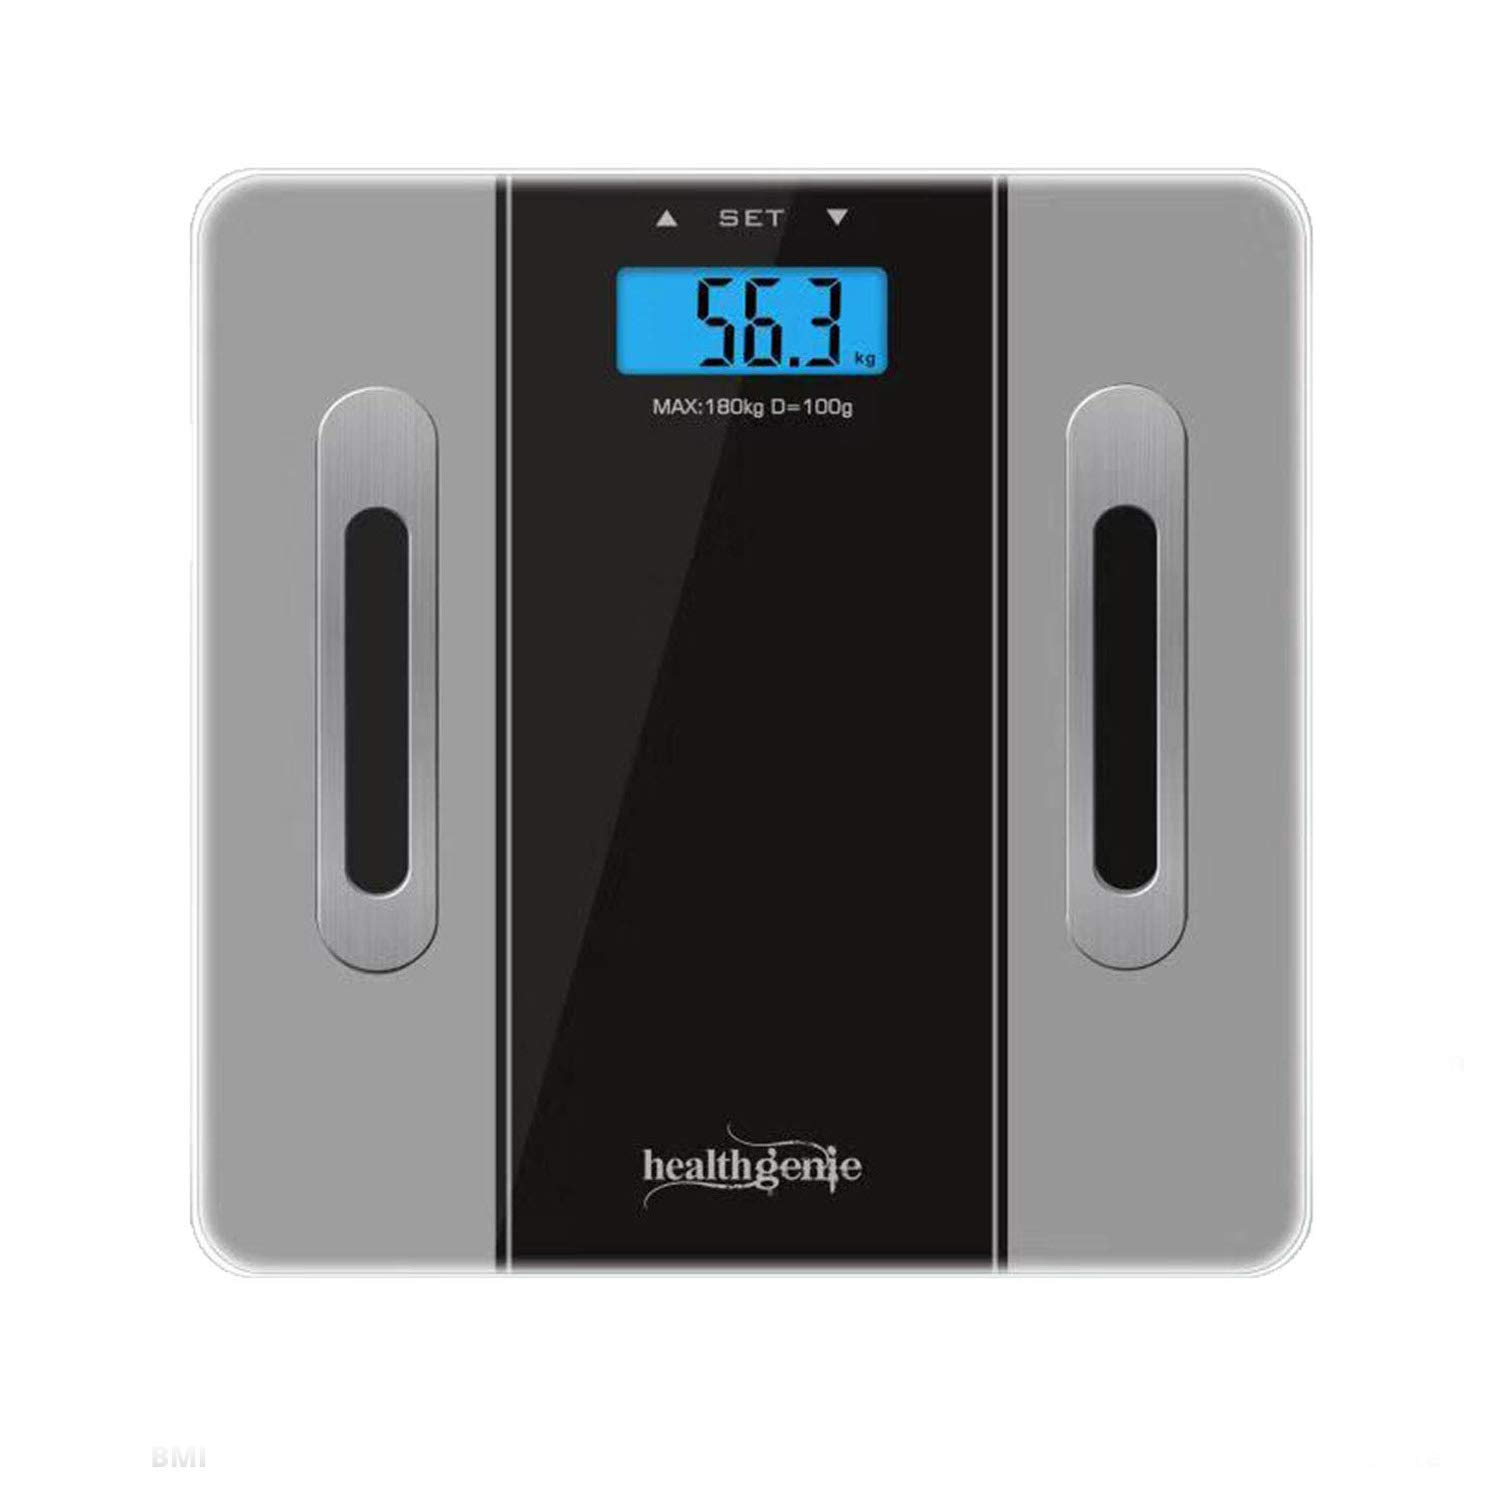 Healthgenie Body Composition Weighing Scale